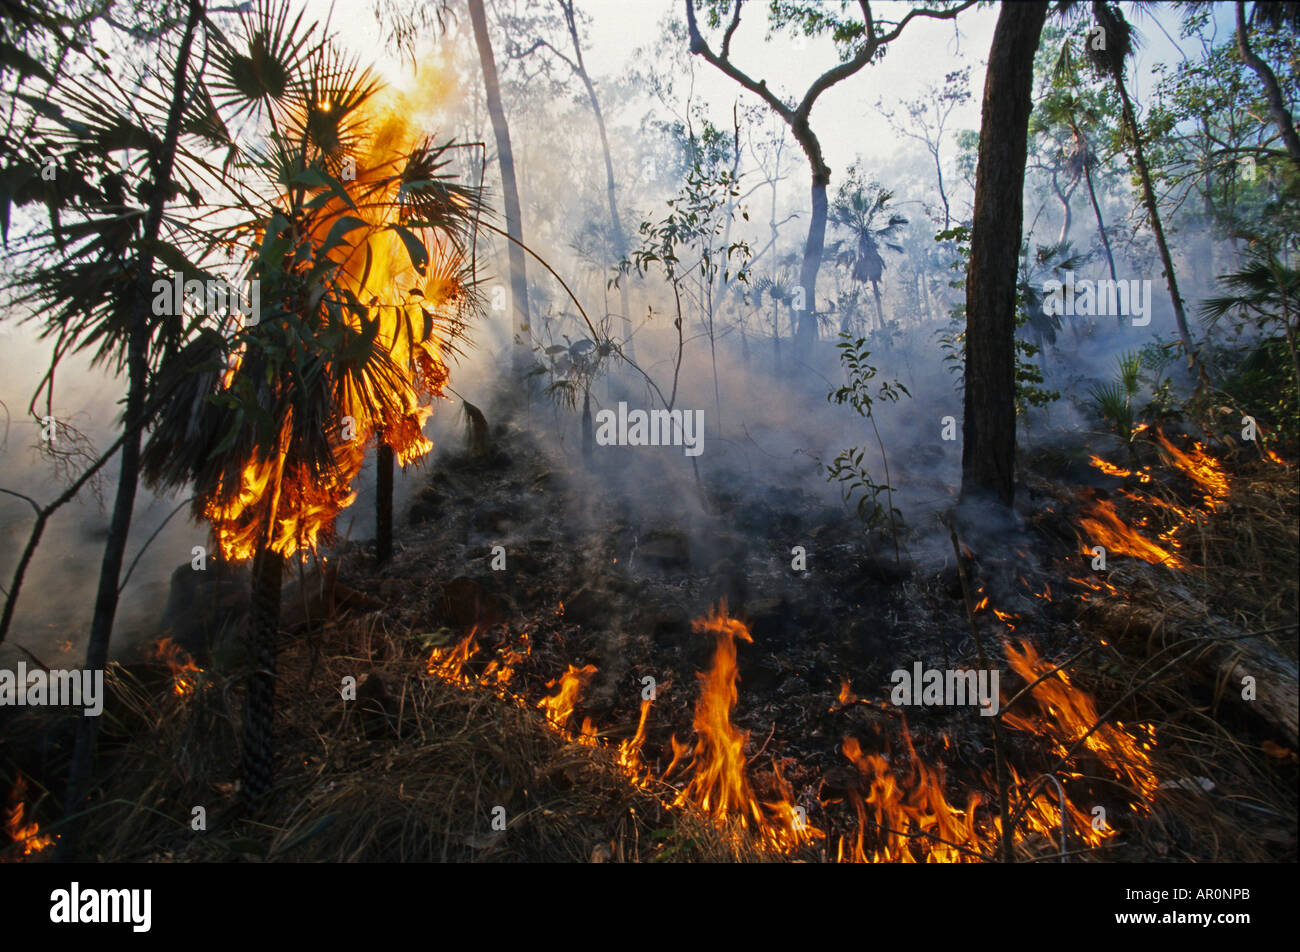 Summer Bushfire in Litchfield National Park, forest fire in summer after dry period, North Australia, Australia - Stock Image